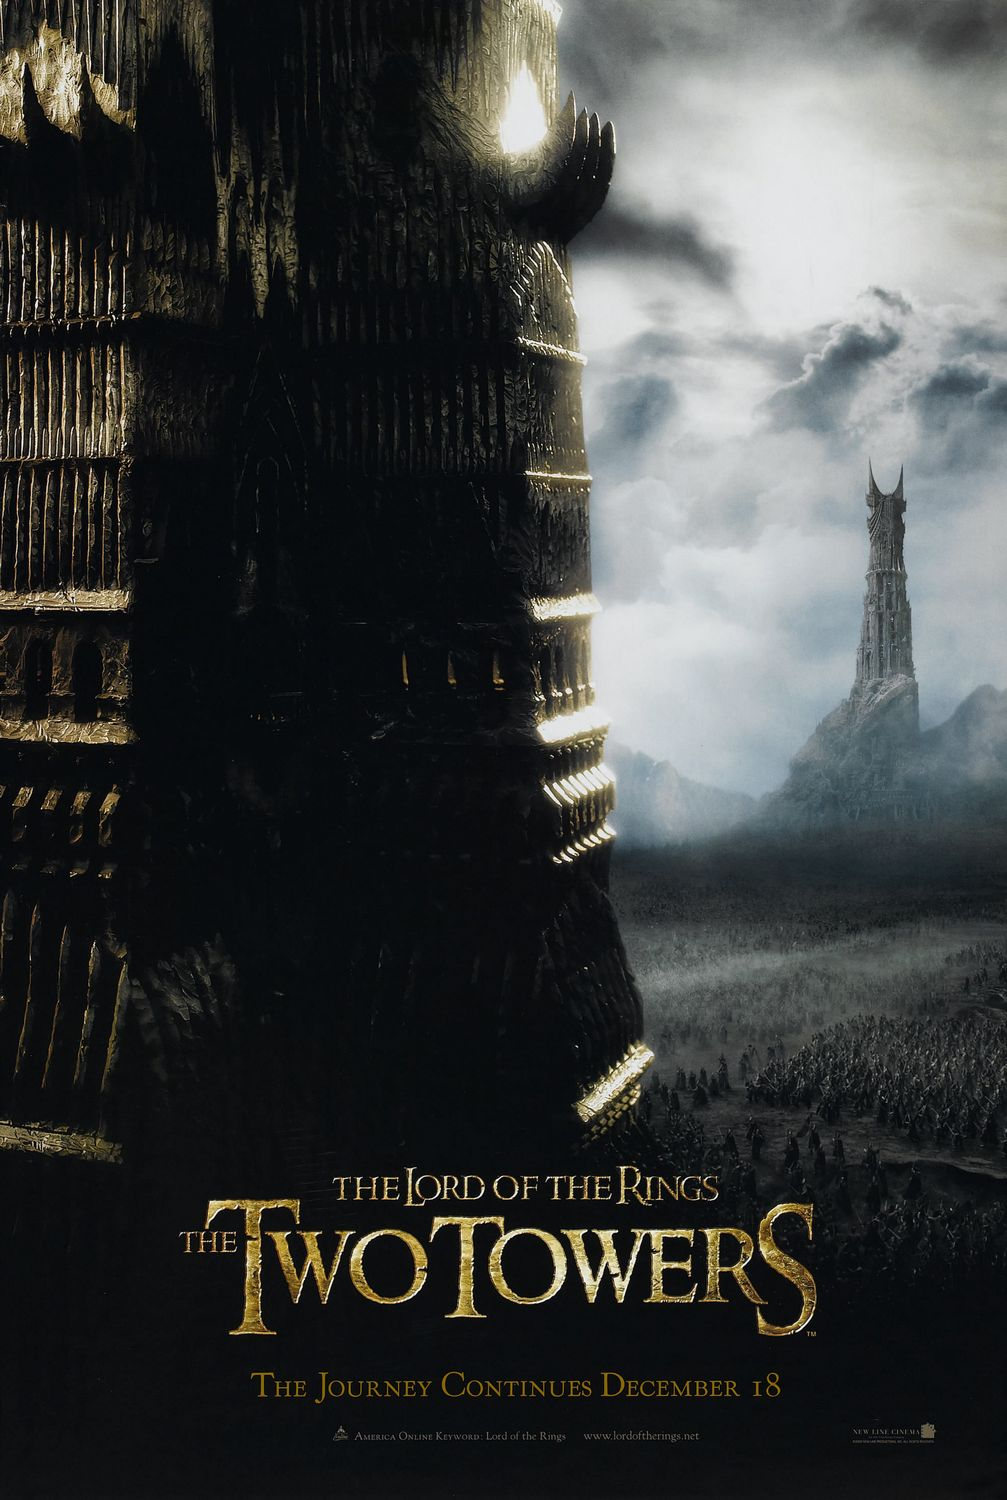 the lord of the rings poster part 1 2002 the two towers high quality HD printable the clear two towers battlefield